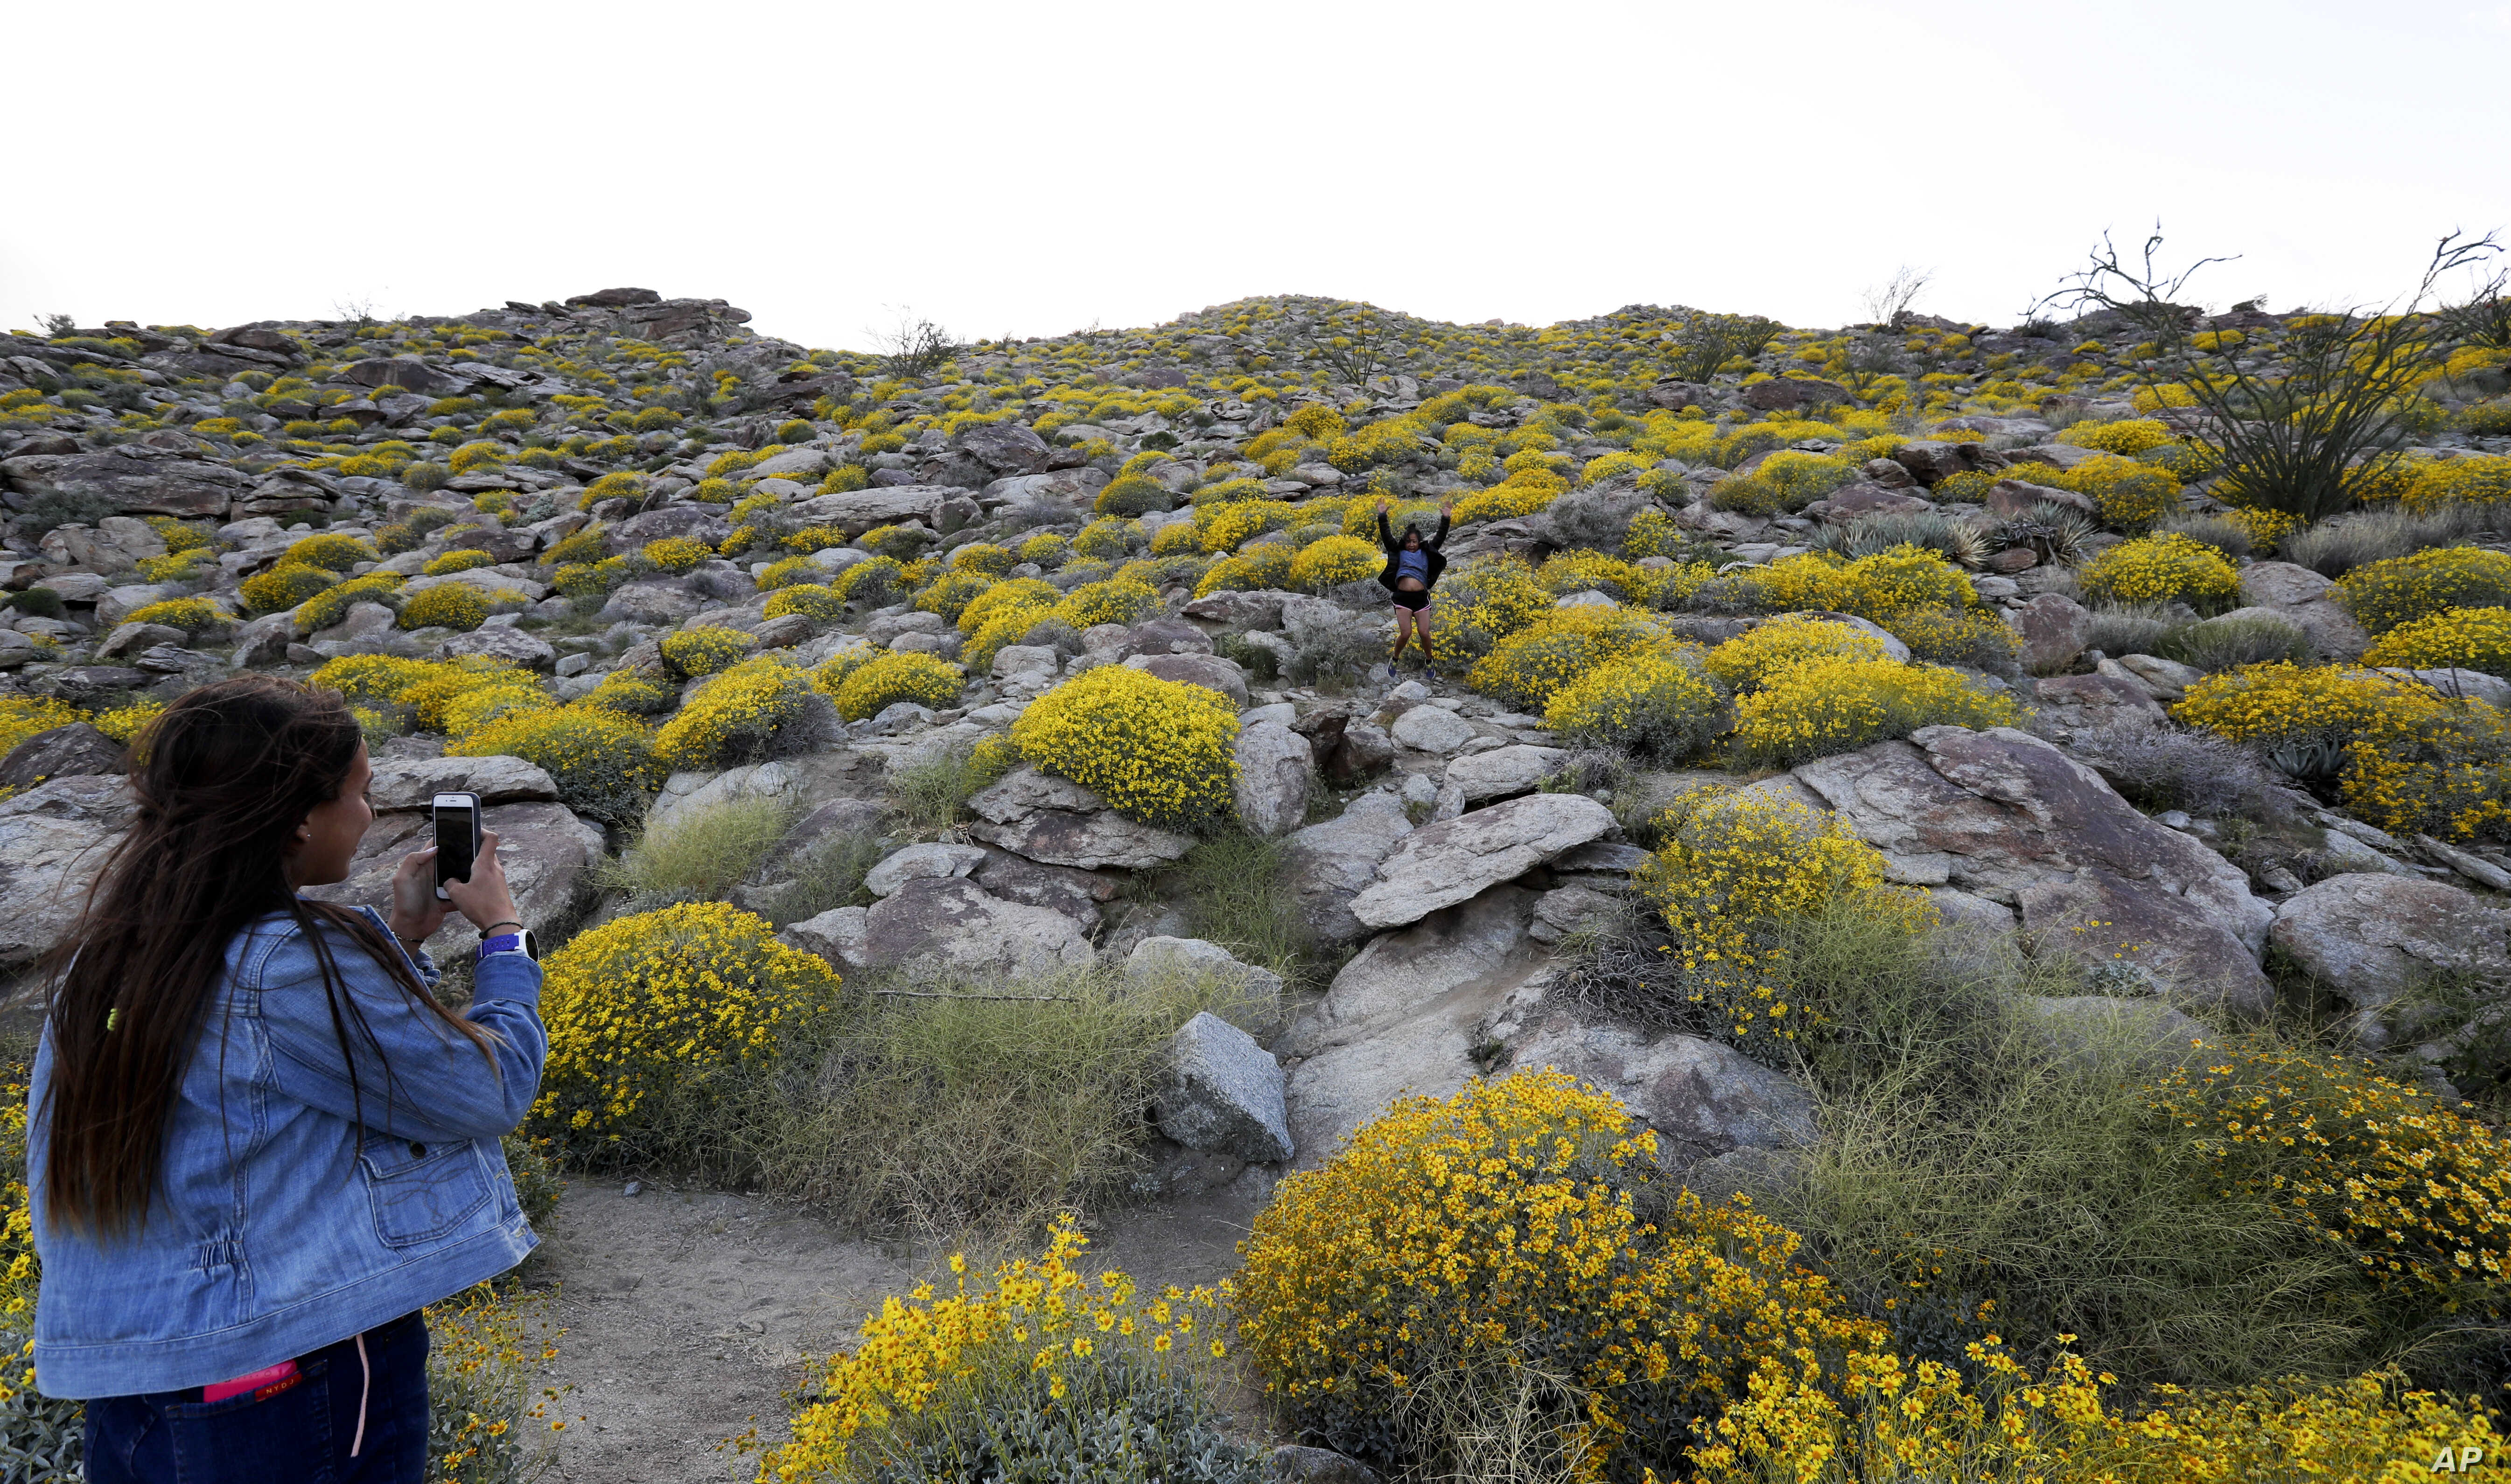 Camille Perkins (left) of Dana Point, Calif., takes a picture as her mother, Cynthia Perkins (center) also of Dana Point, jumps among blooming desert shrubs in Borrego Springs, Calif.